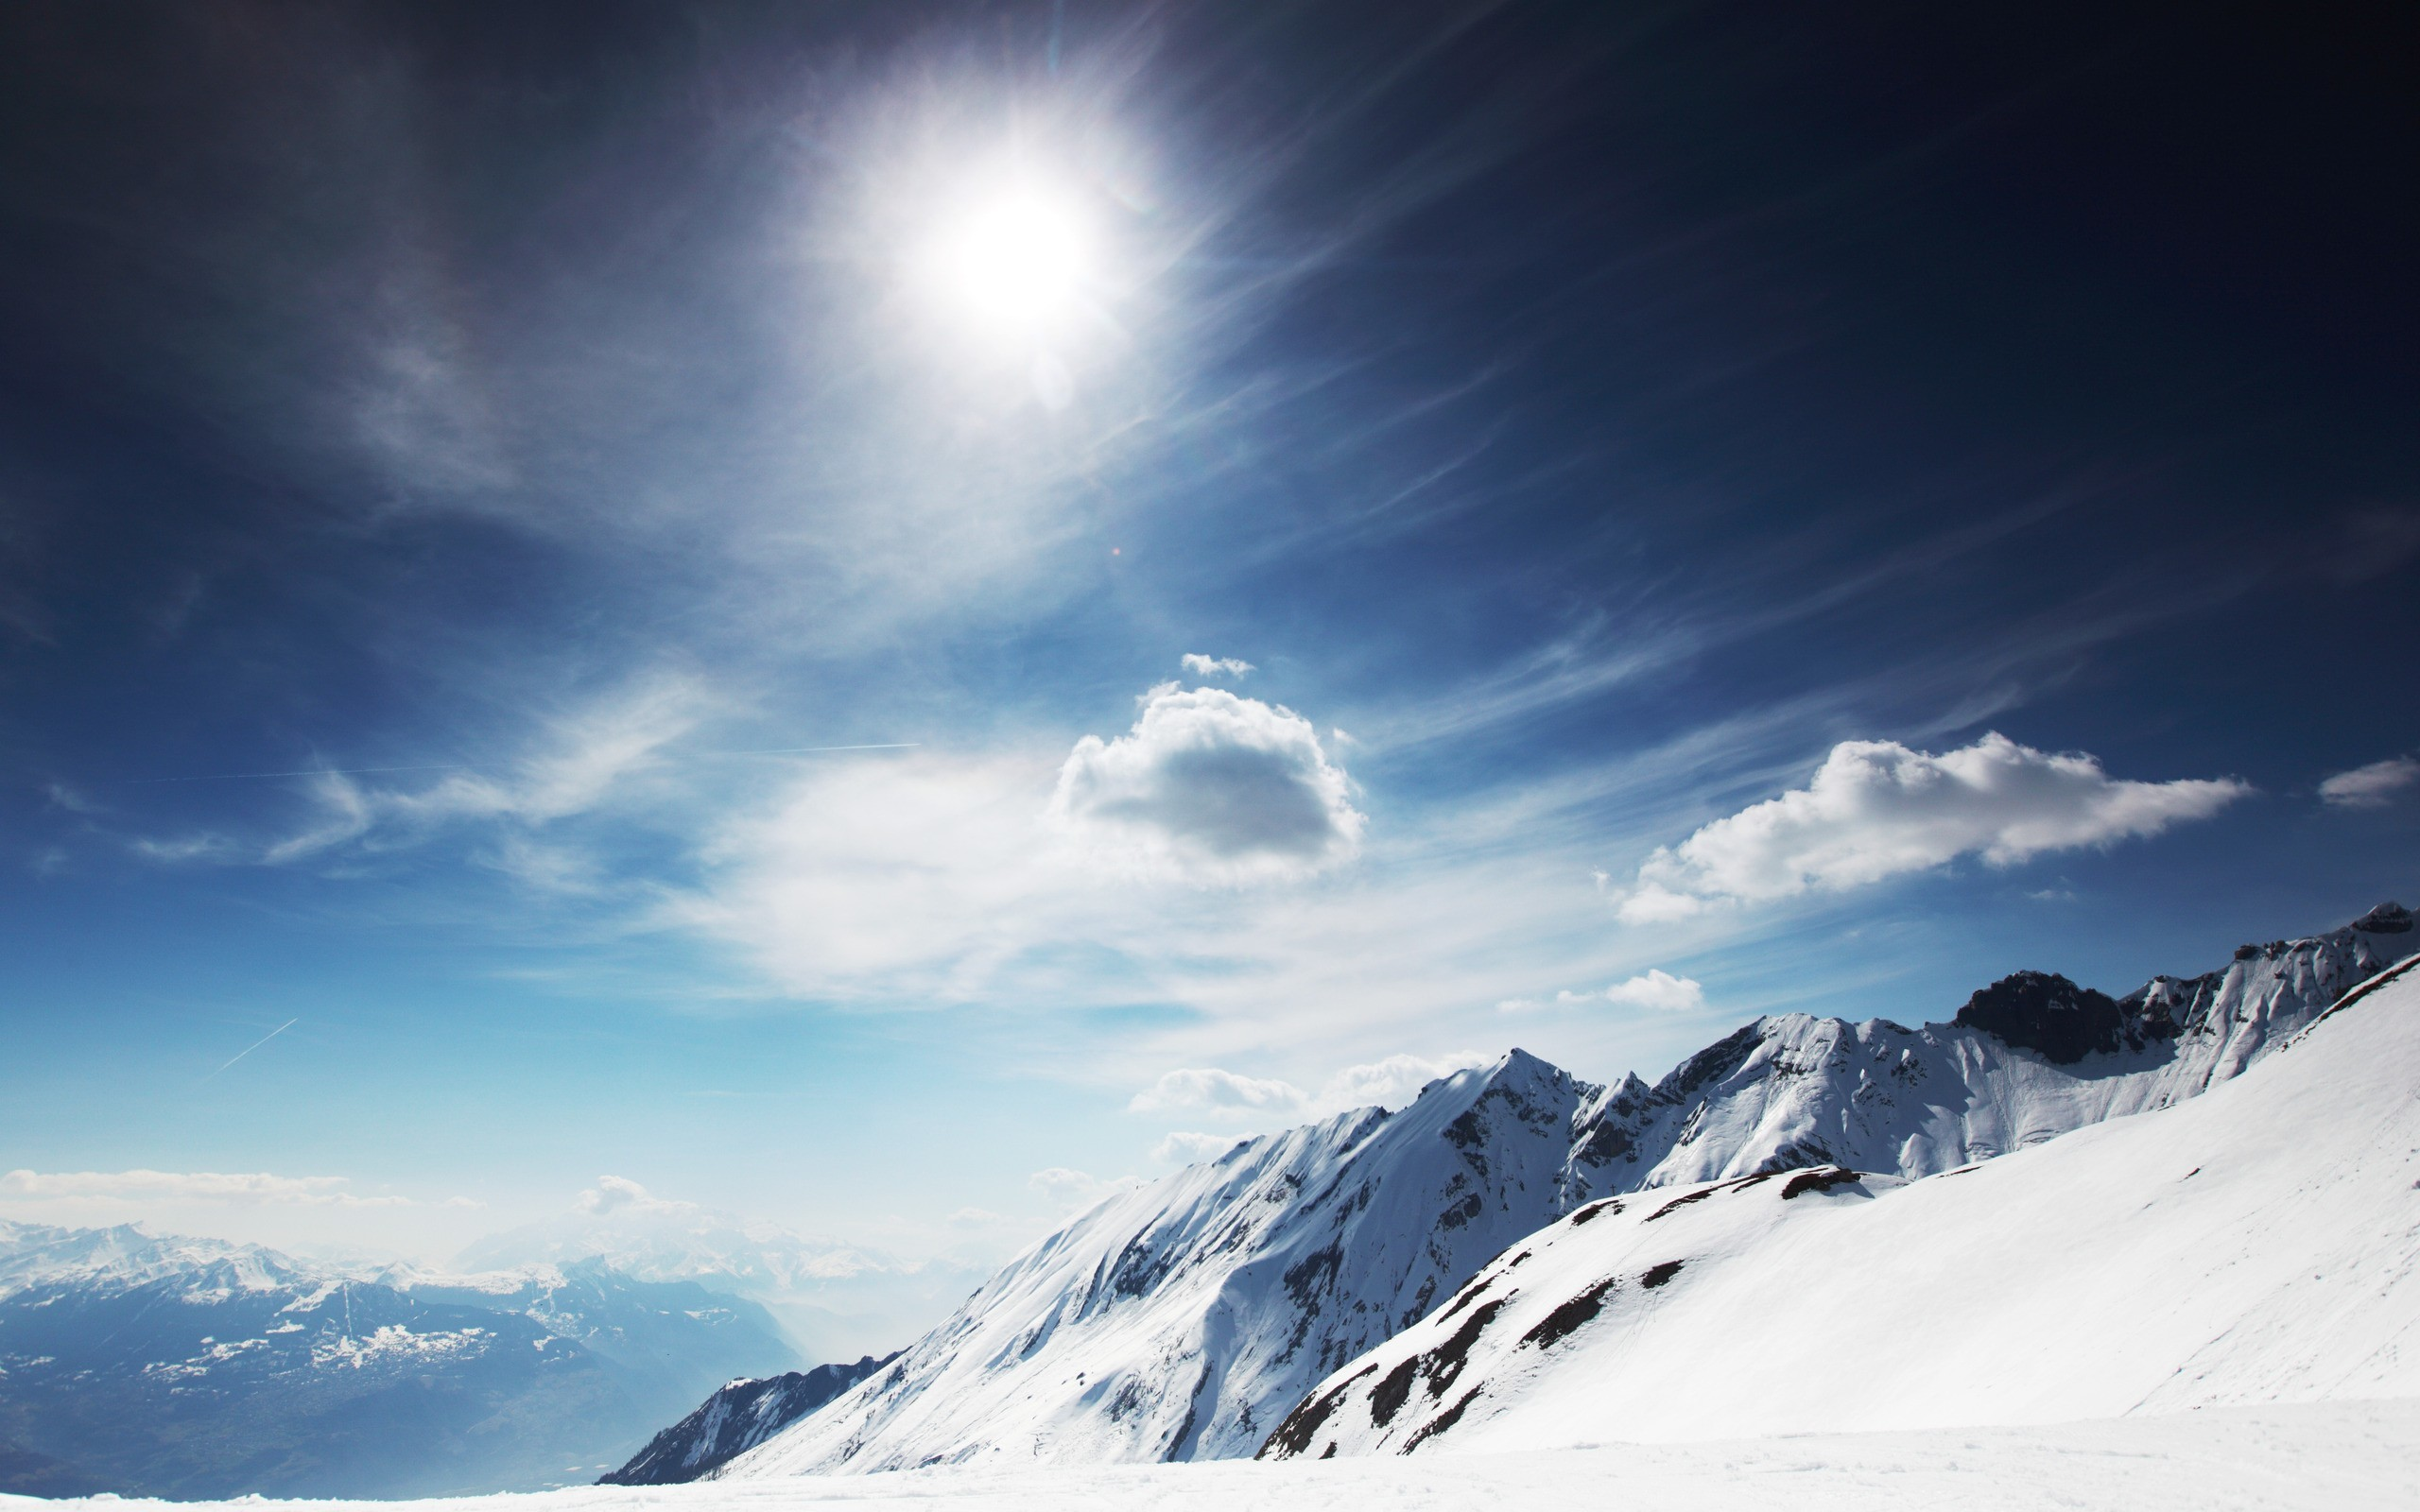 Res: 2560x1600, Tags: Mountains Snowy Sunny